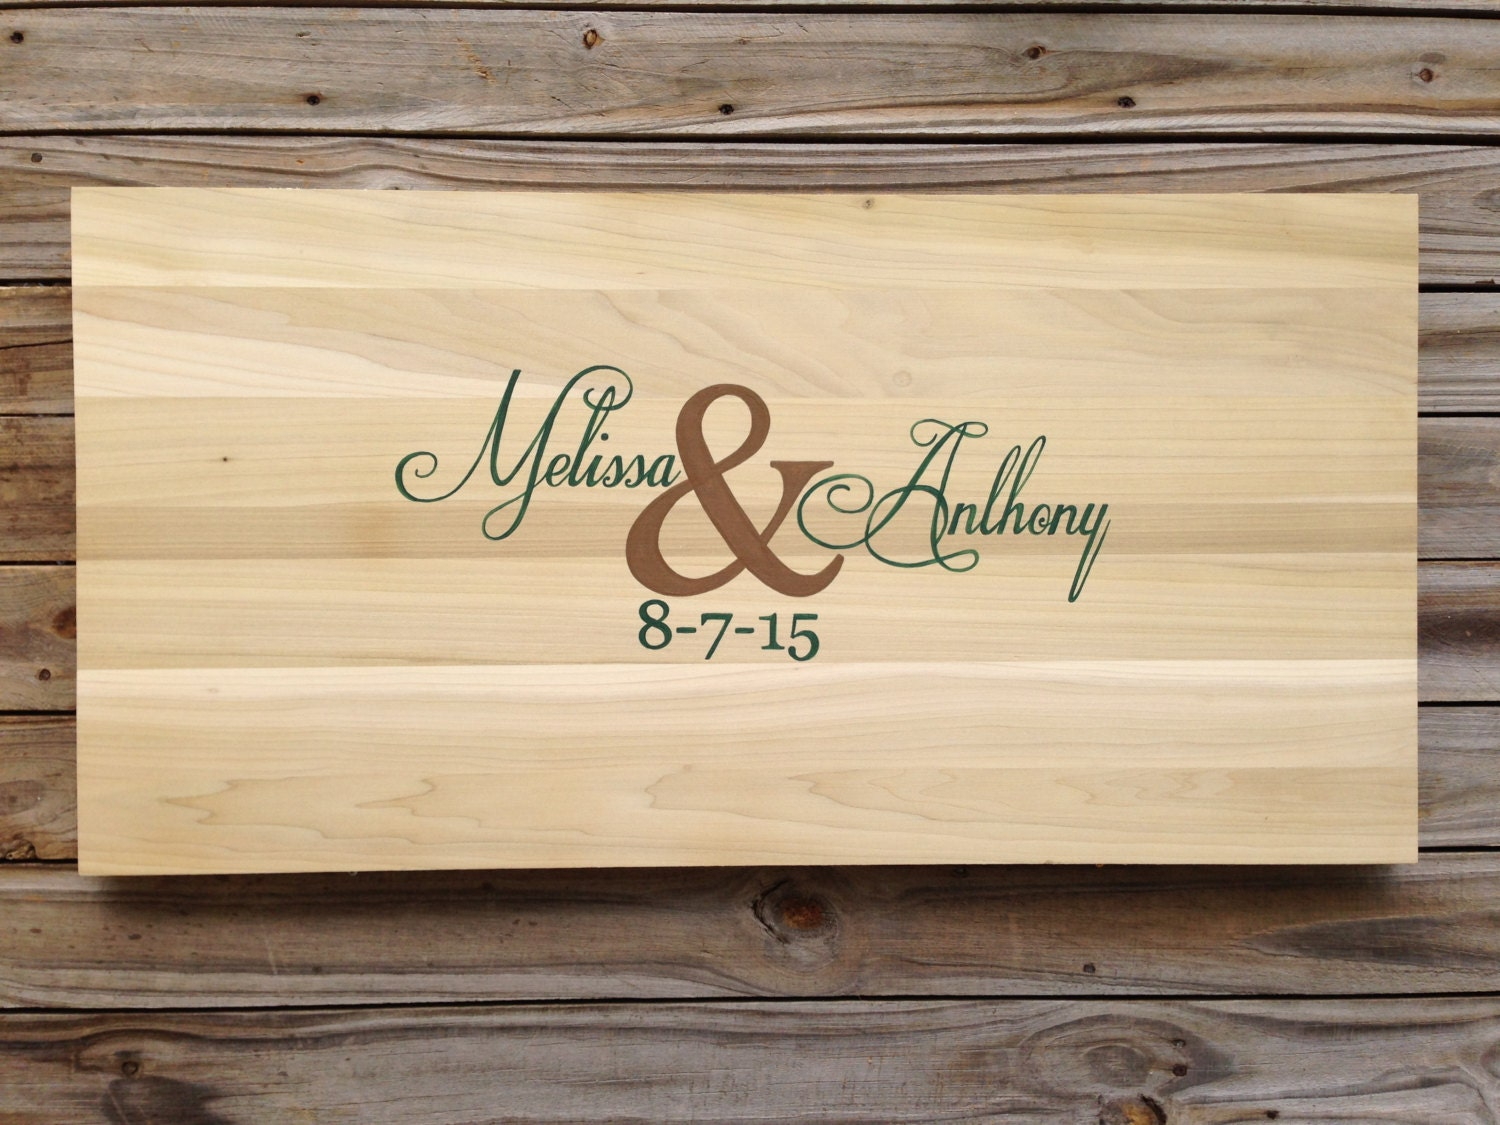 wedding photo sign in book - Akba.greenw.co